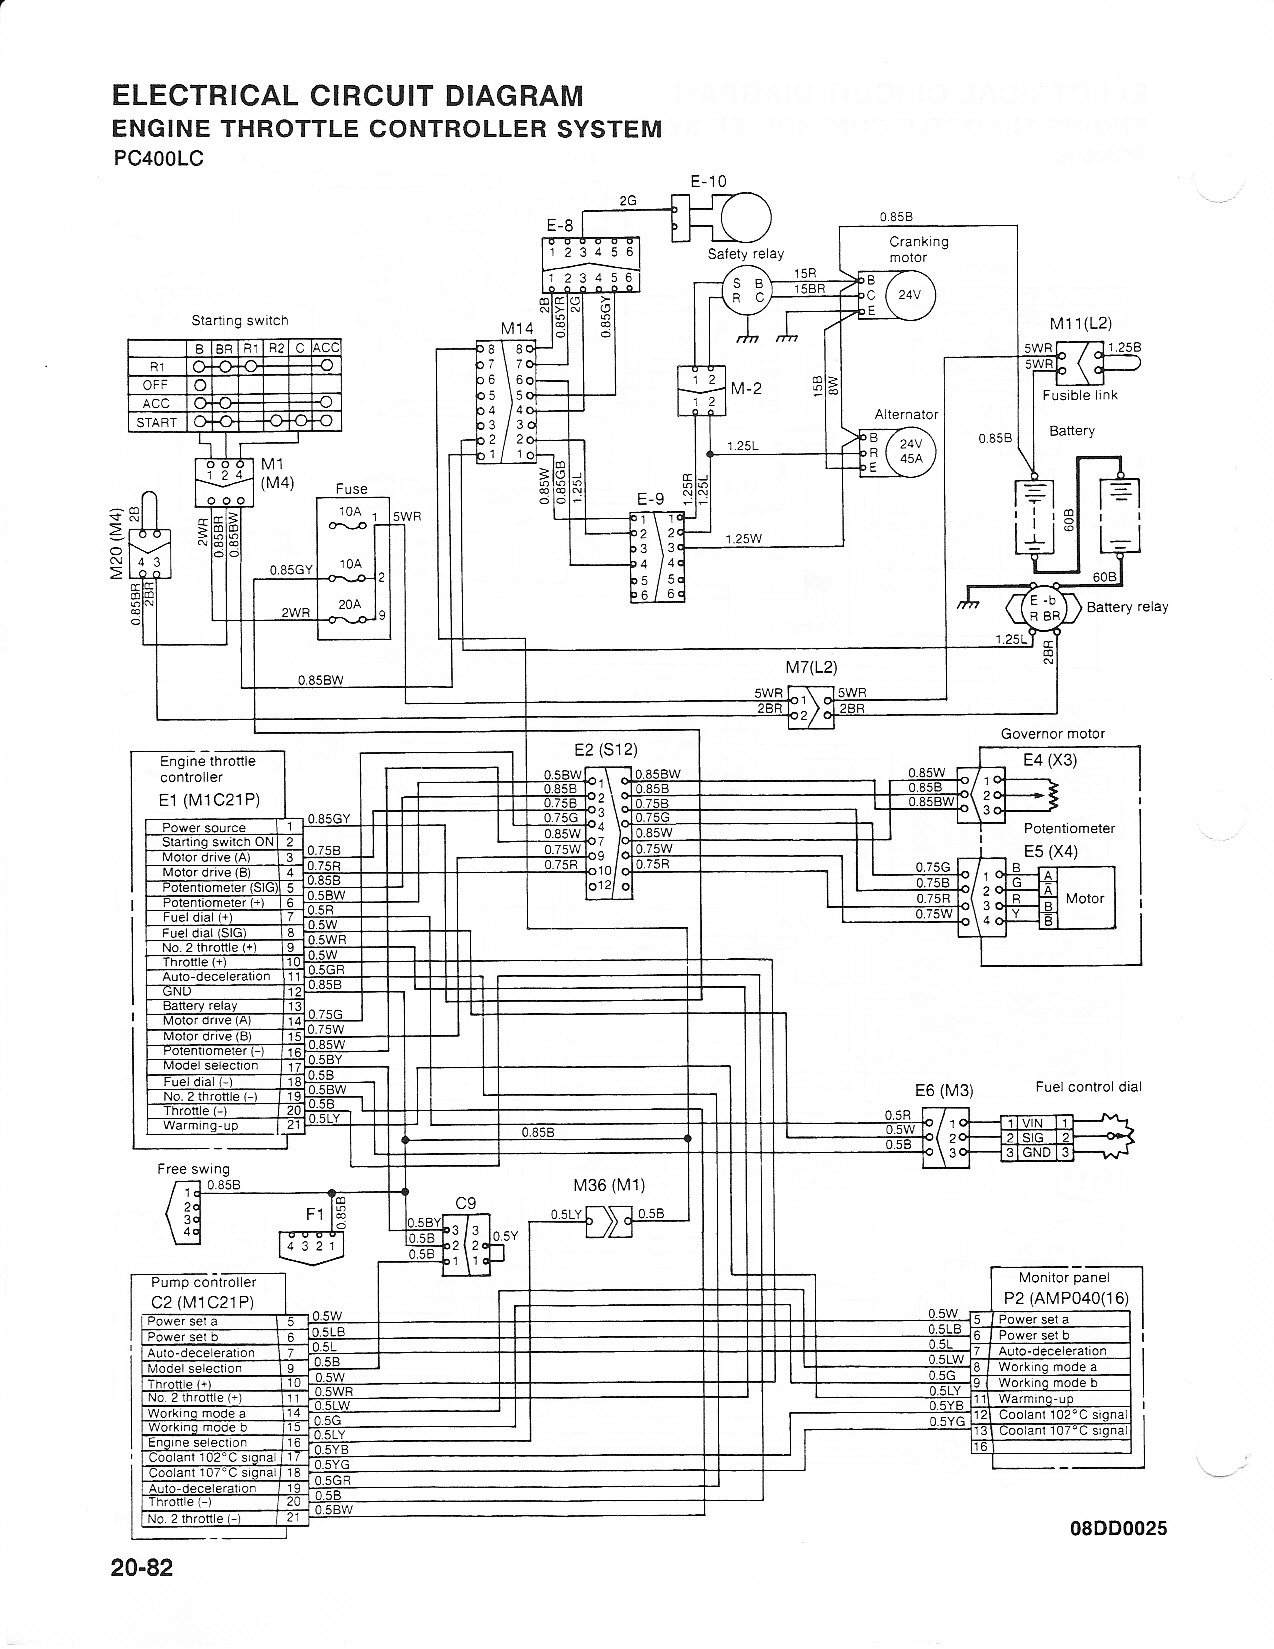 2012 02 21_021124_pc400_0001 komatsu wiring diagram komatsu pc400lc wiring diagram \u2022 wiring columbia wiring diagram at crackthecode.co